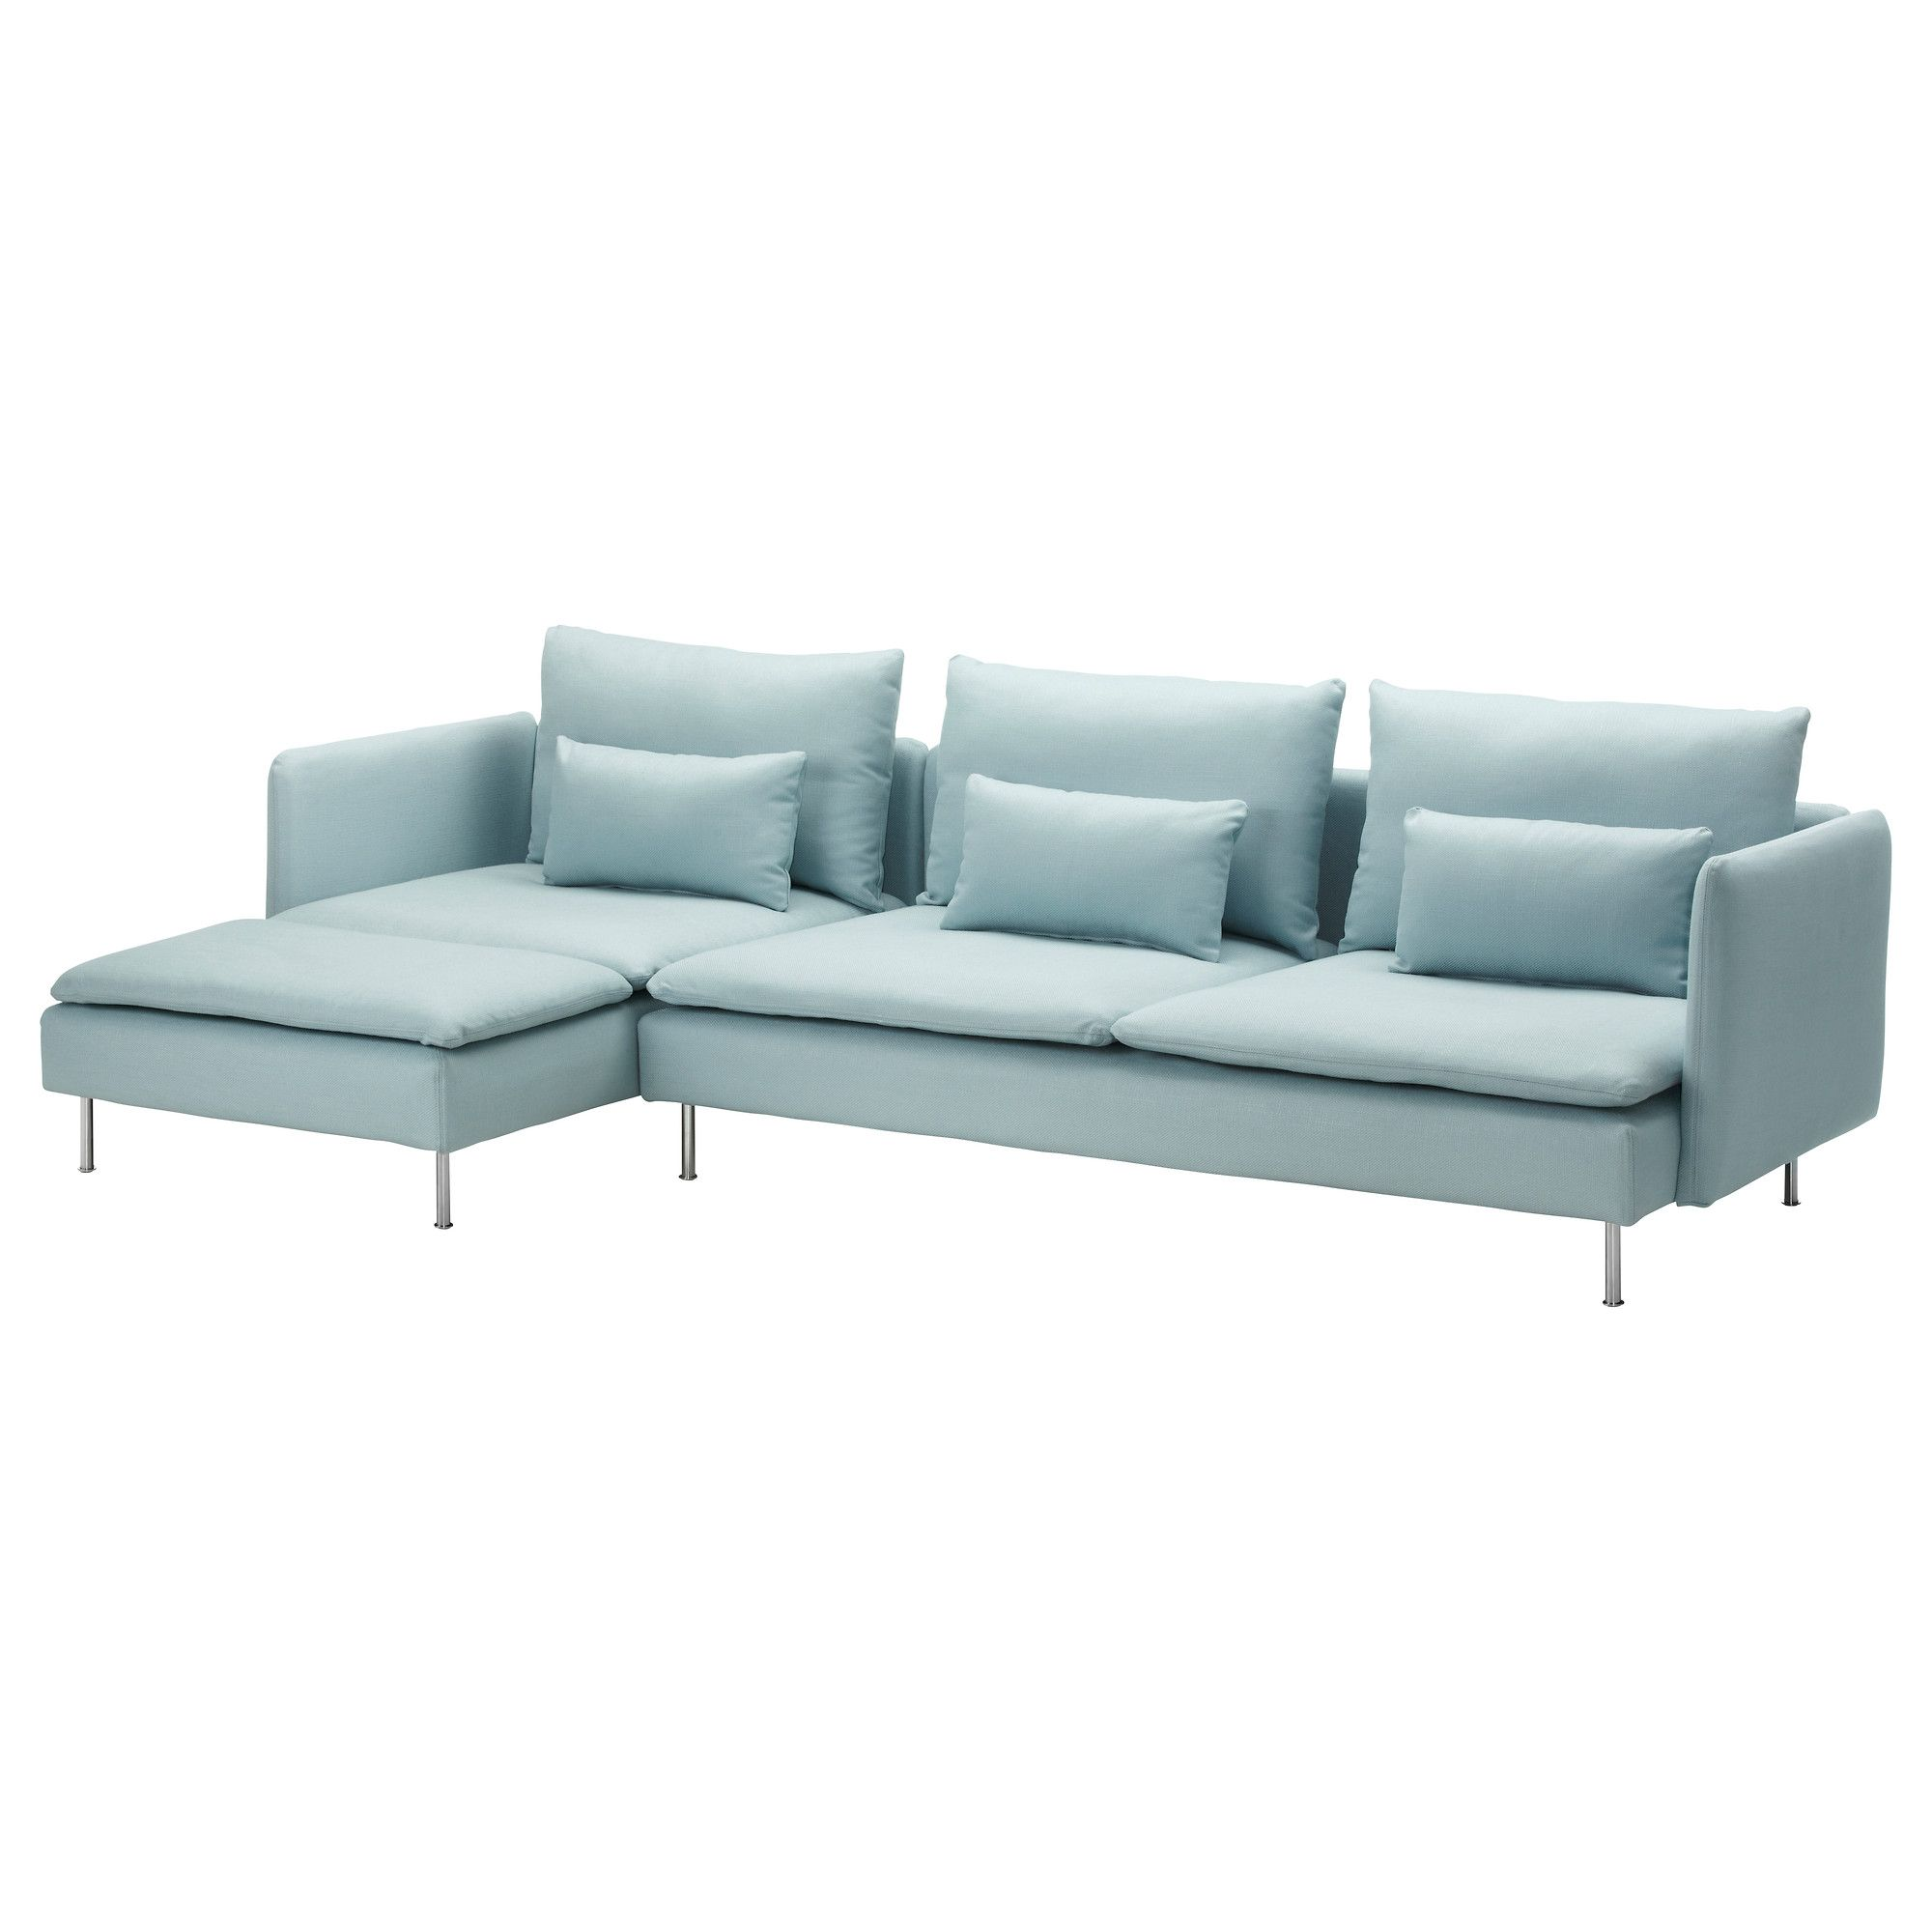 Removable covers SÖDERHAMN Sofa and chaise lounge - Isefall light turquoise - IKEA  sc 1 st  Pinterest : ikea sofa chaise lounge - Sectionals, Sofas & Couches